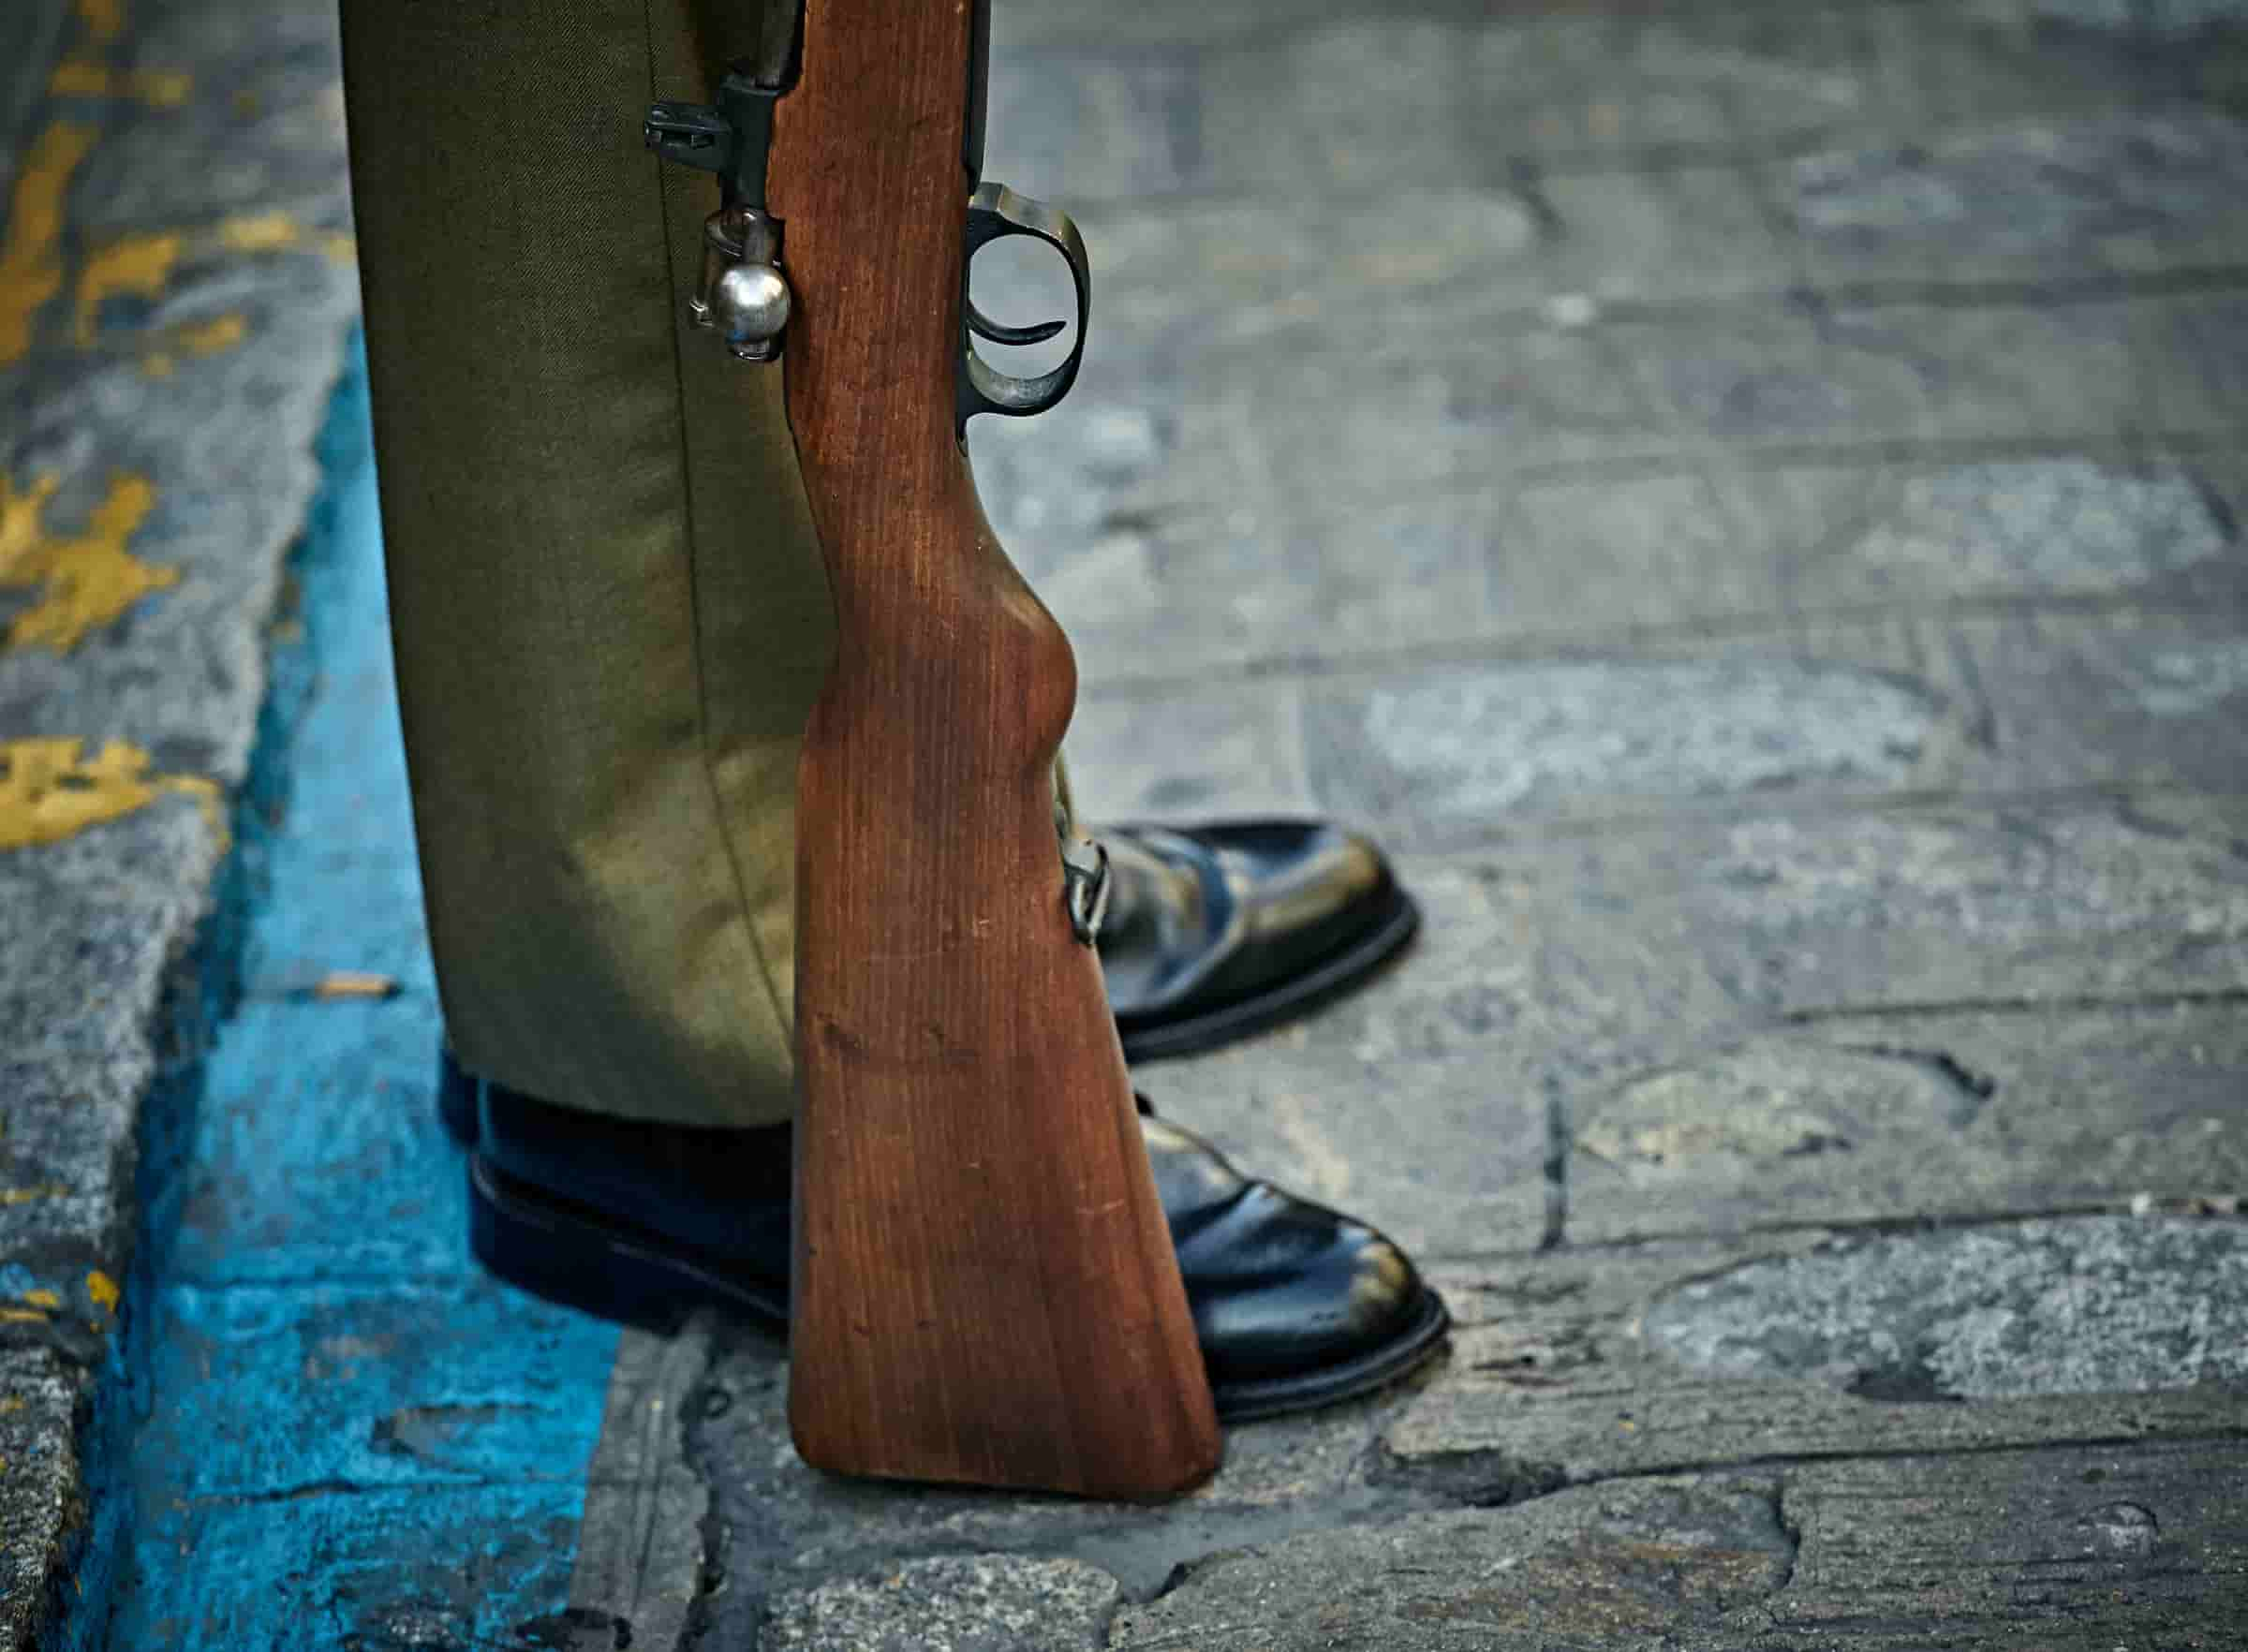 A person standing in formal shoes with the end of the gun resting on the ground.